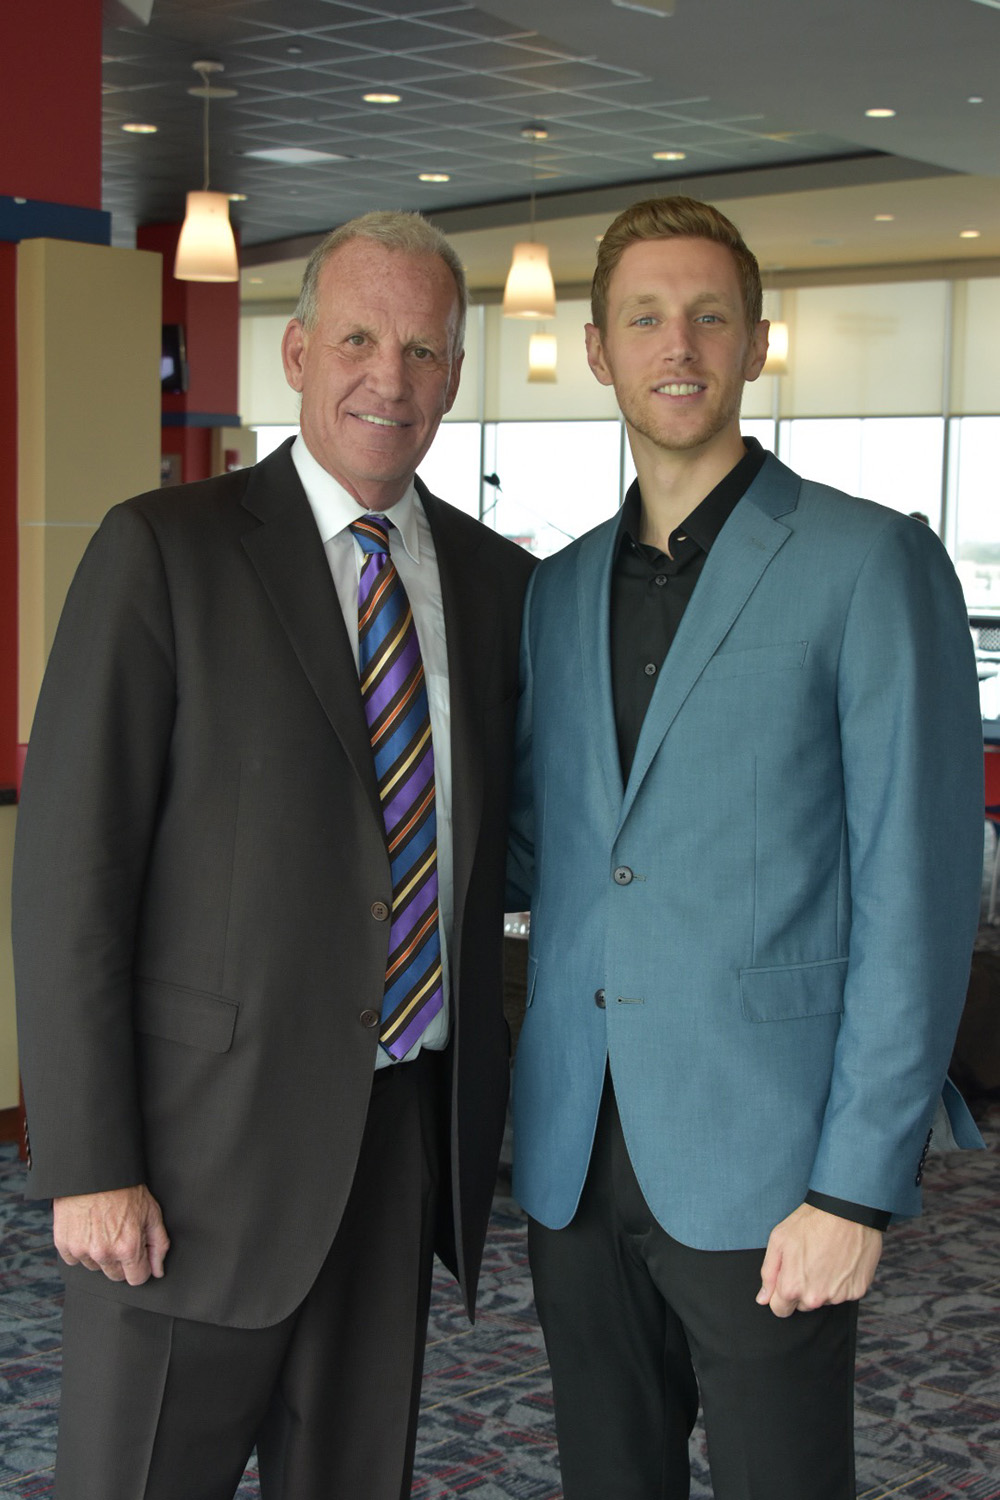 with Doug Collins, NBA Hall of Fame Coach and Player